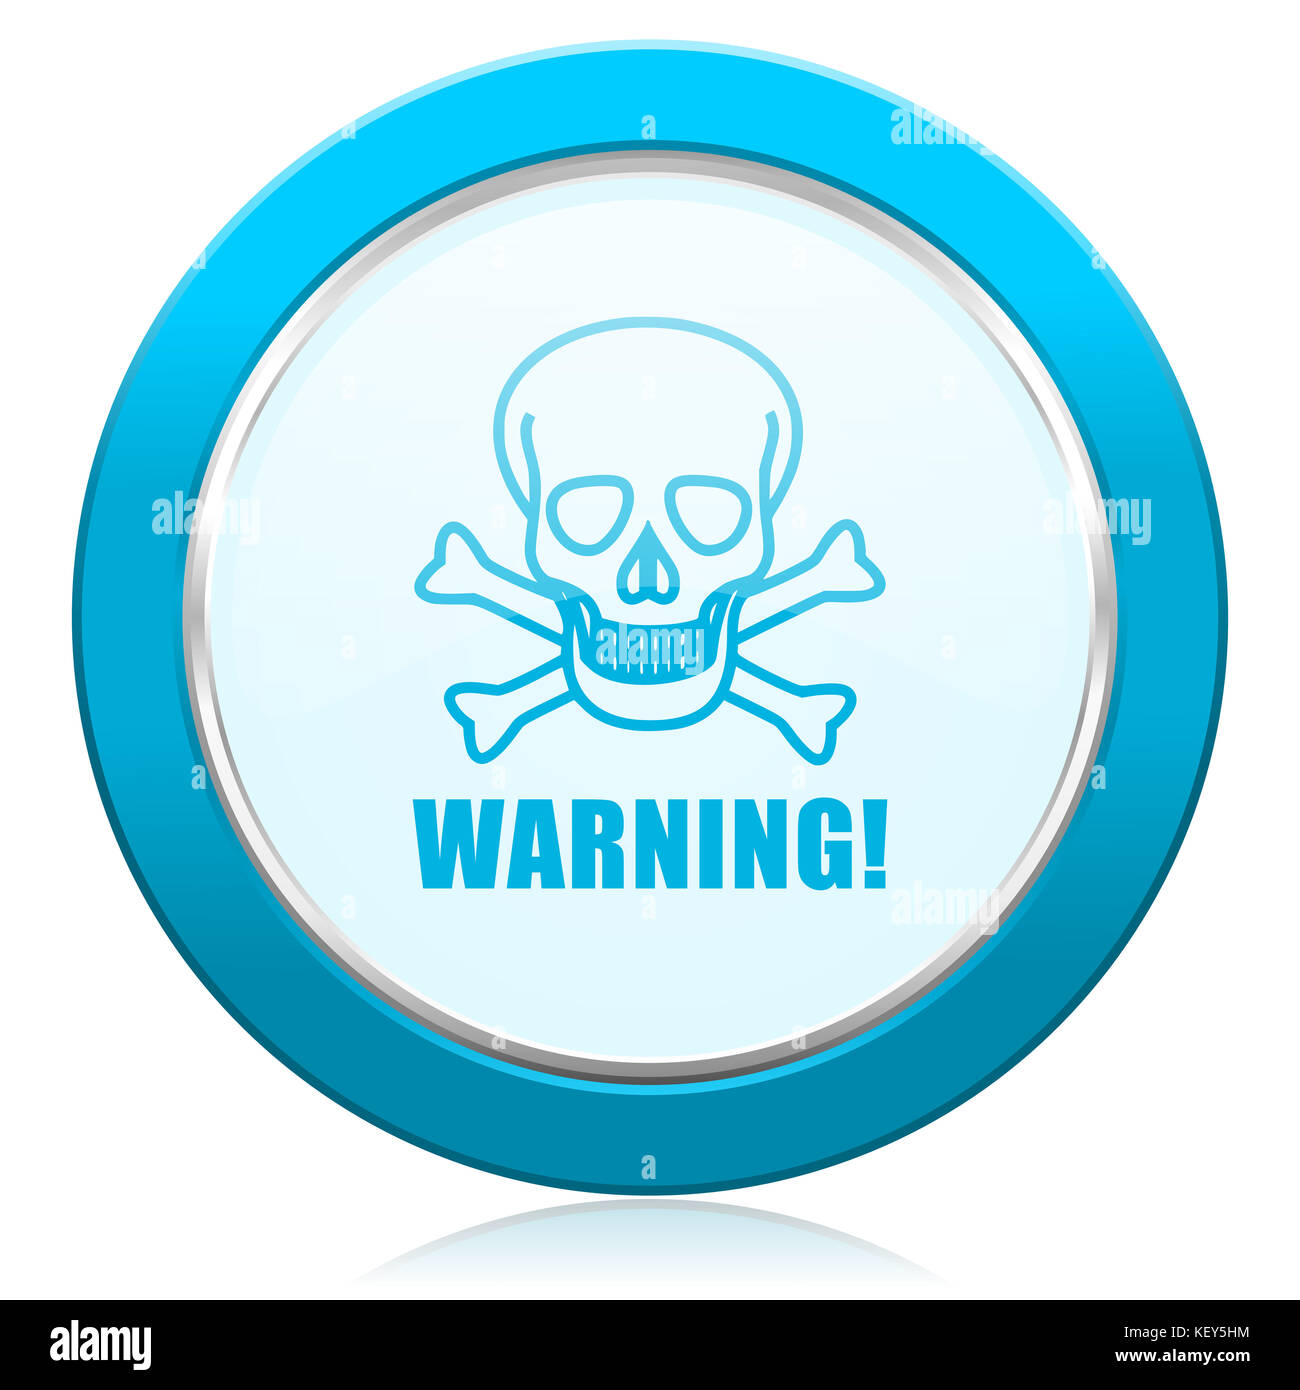 Warning skull blue chrome silver metallic border web icon. Round button for internet and mobile phone application - Stock Image